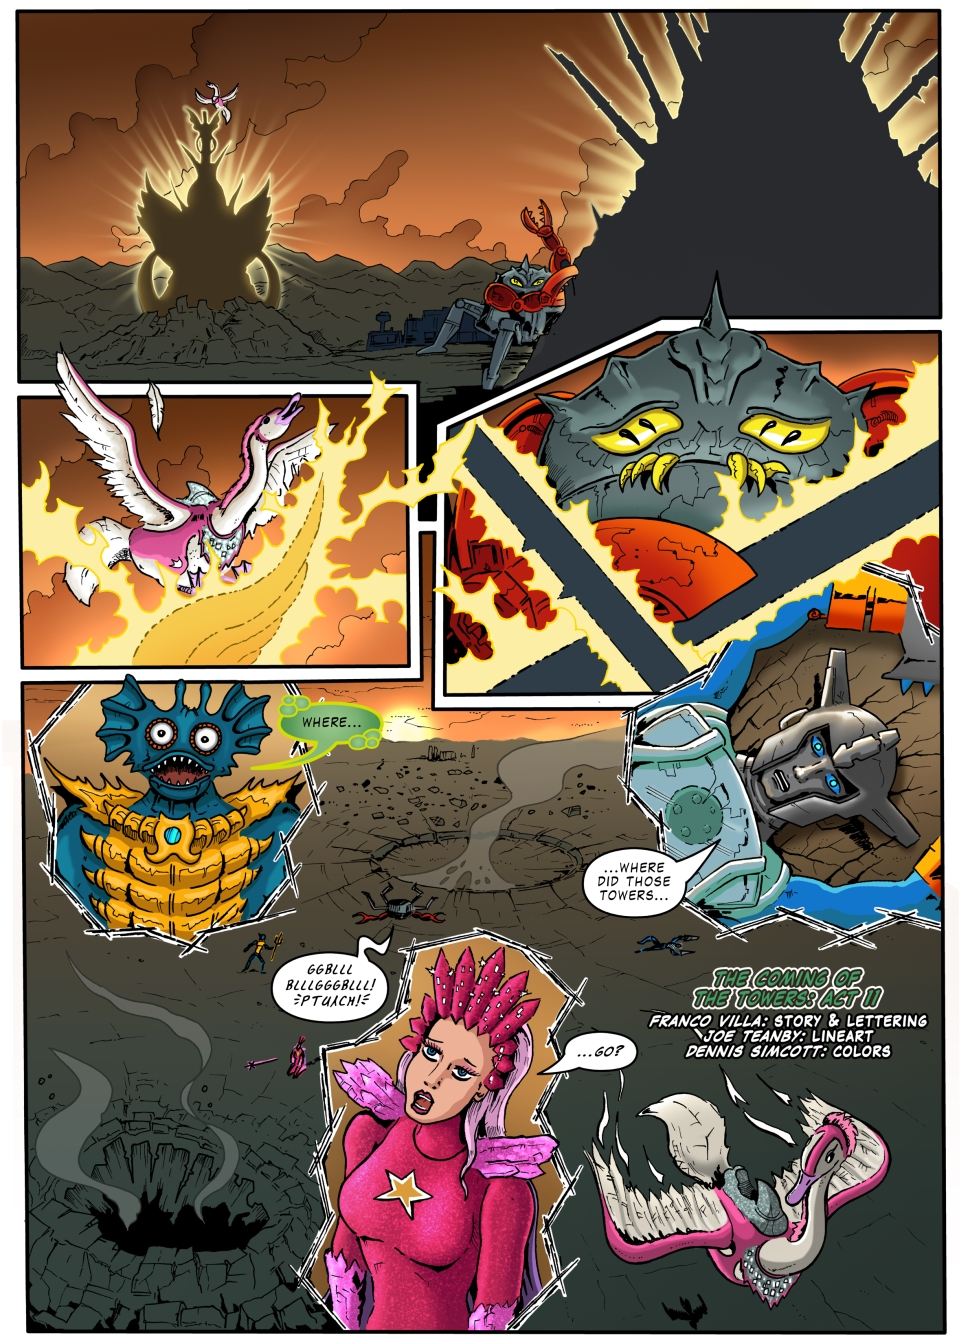 PoP/MotU - The Coming of the Towers - page 25